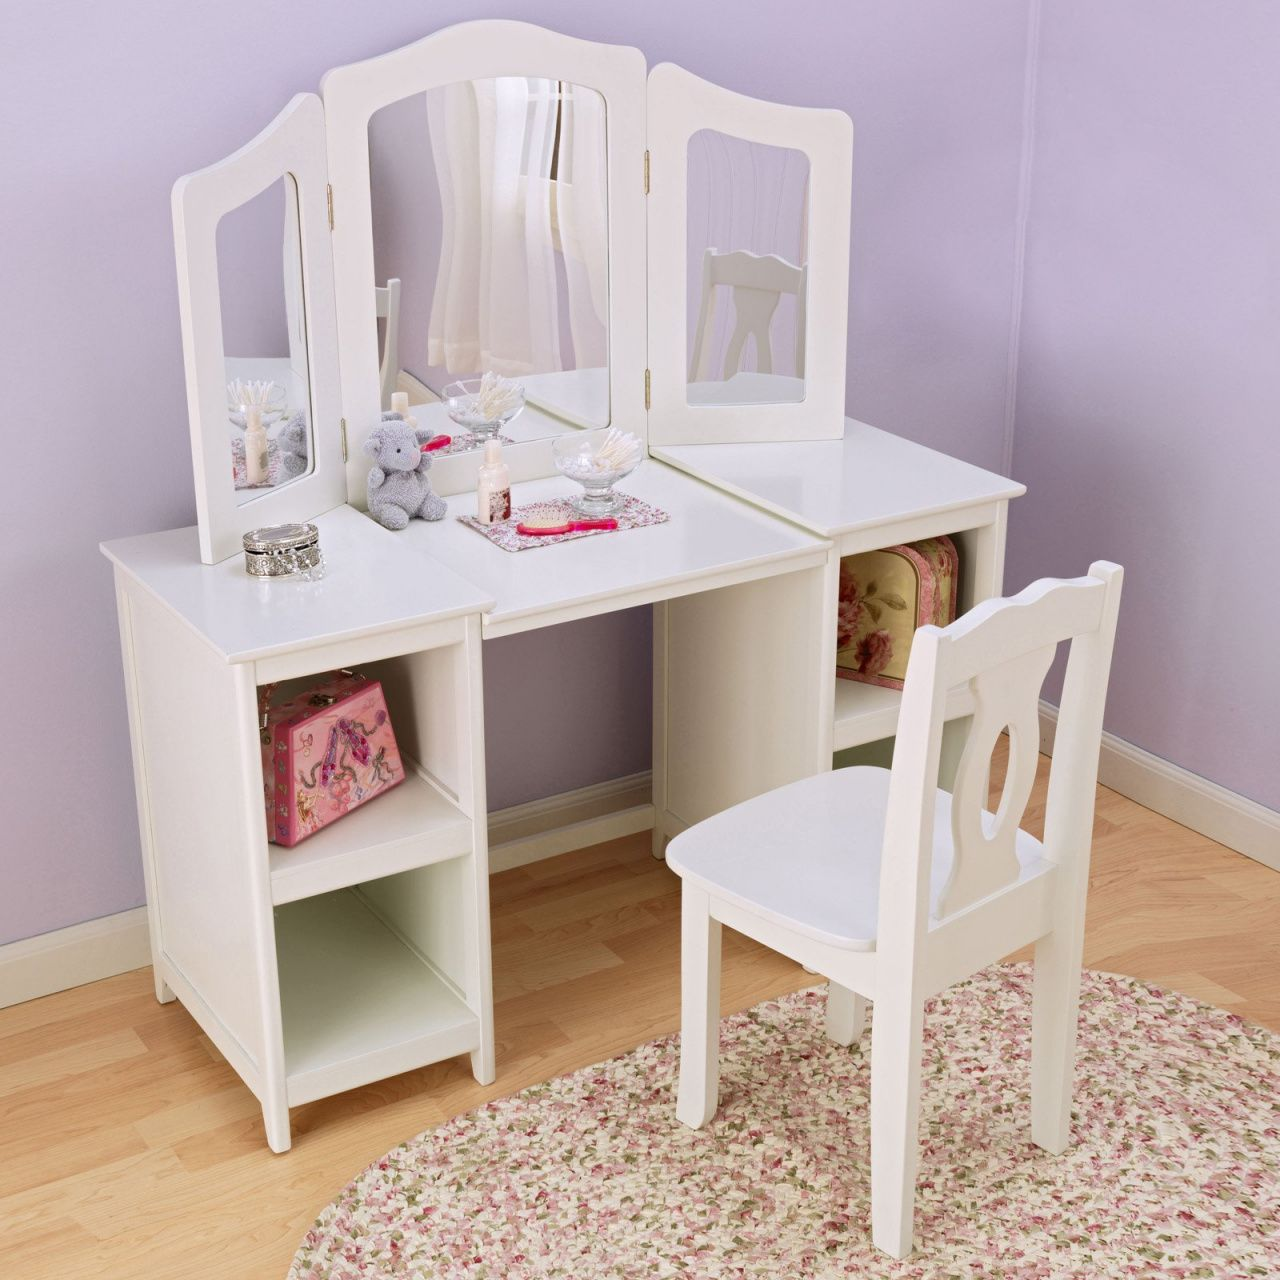 Kids Vanity Tables   Rustic Home Office Furniture Check More At Http://www. Ideas  For BedroomsKid ...